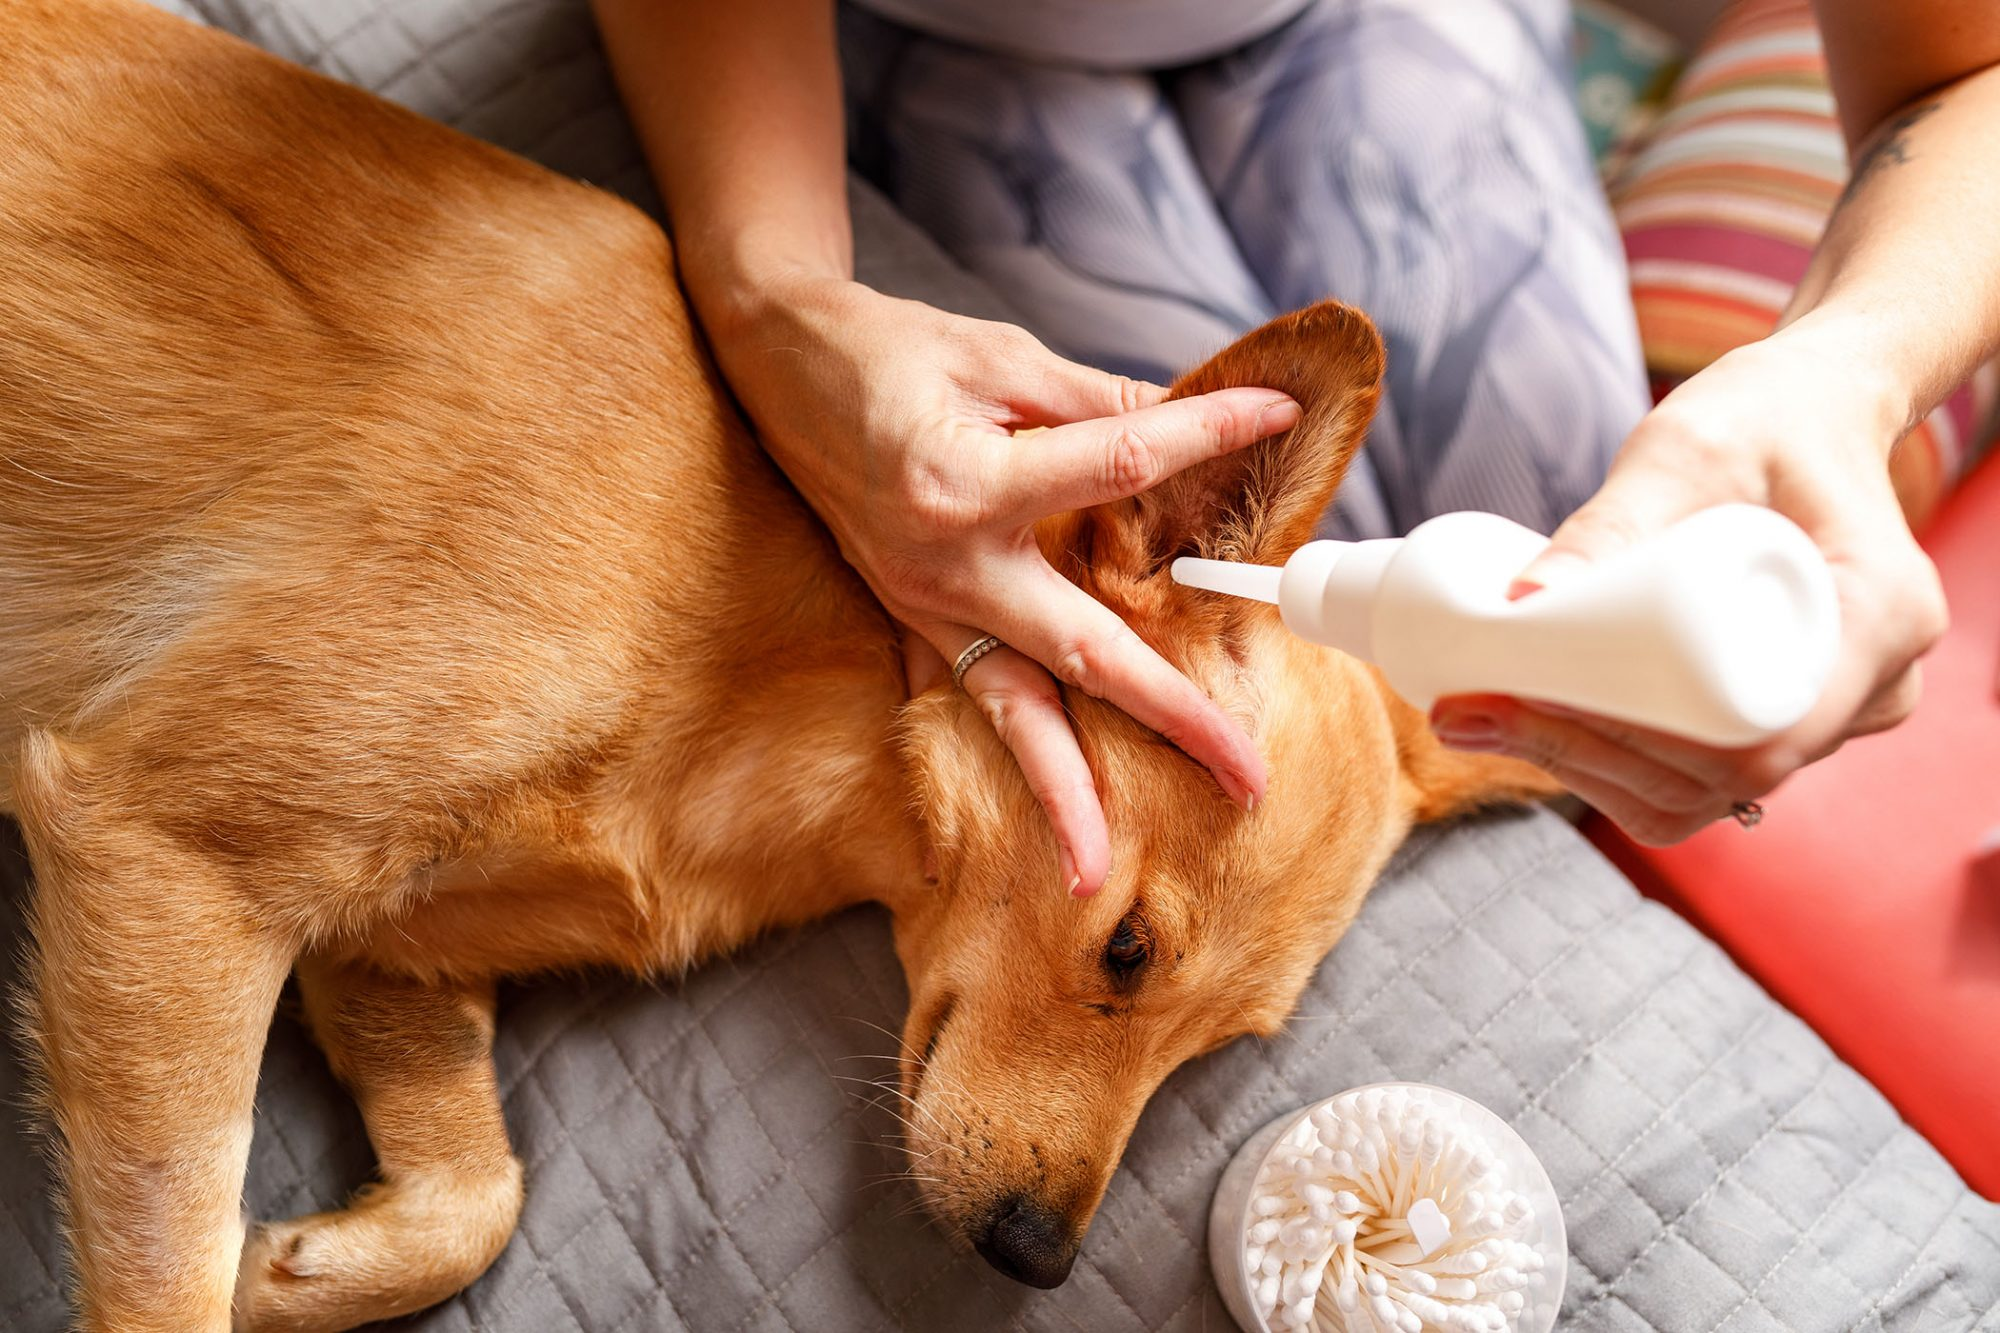 woman cleaning dog's ear